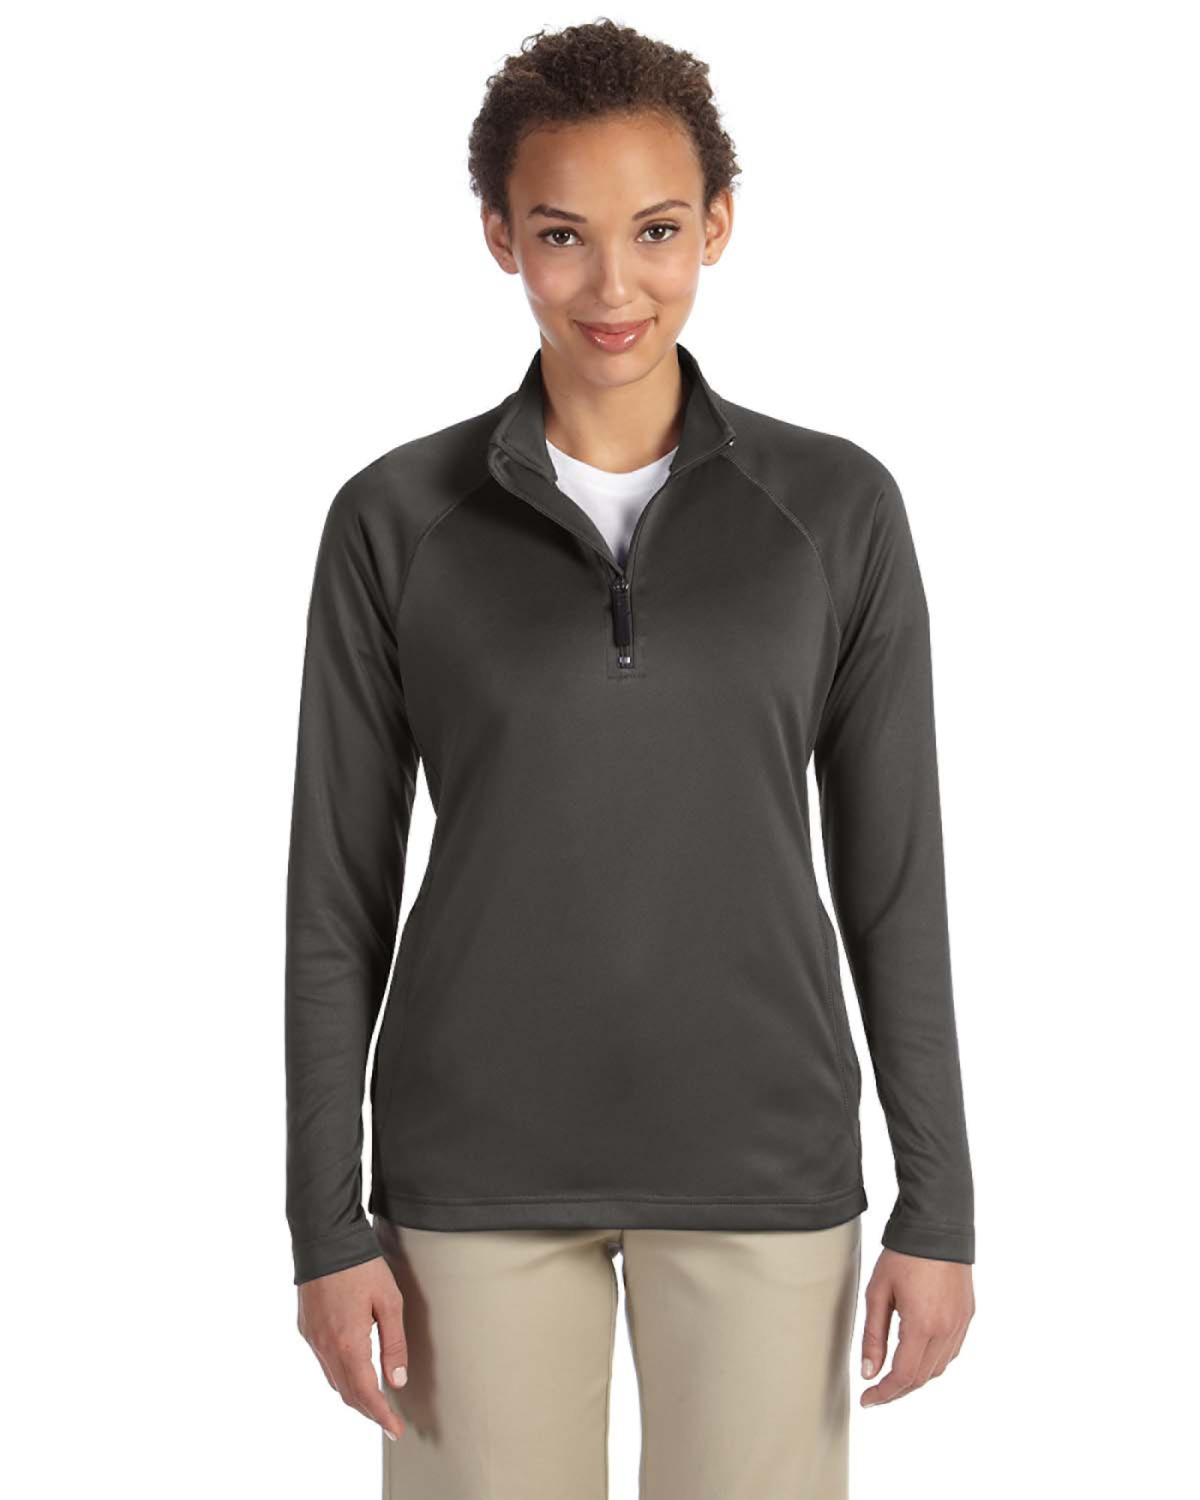 Ladies' Stretch Tech-Shell® Compass Quarter-Zip